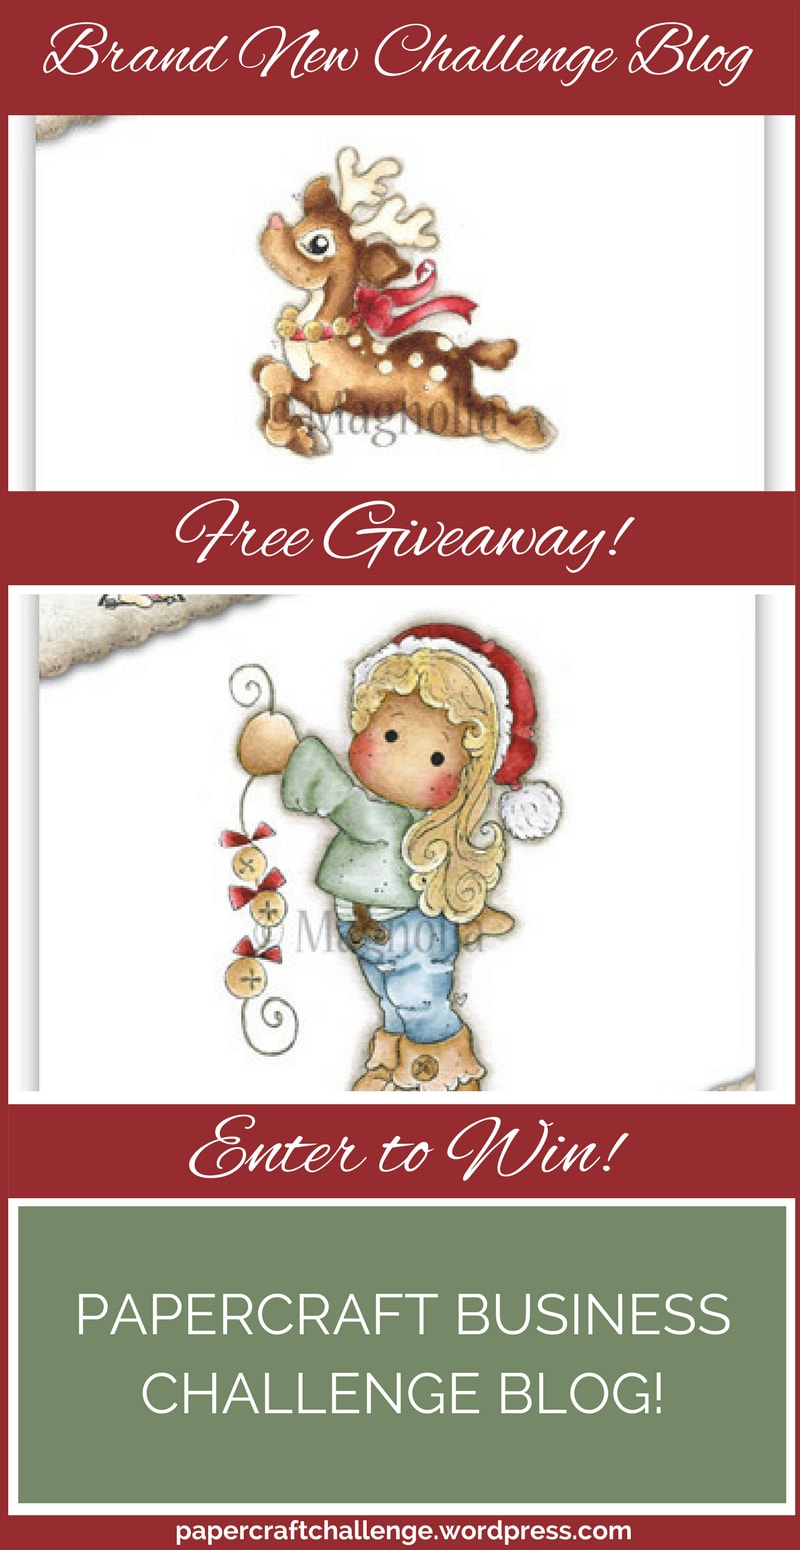 Free Giveaway - Papercraft Business Challenge Blog